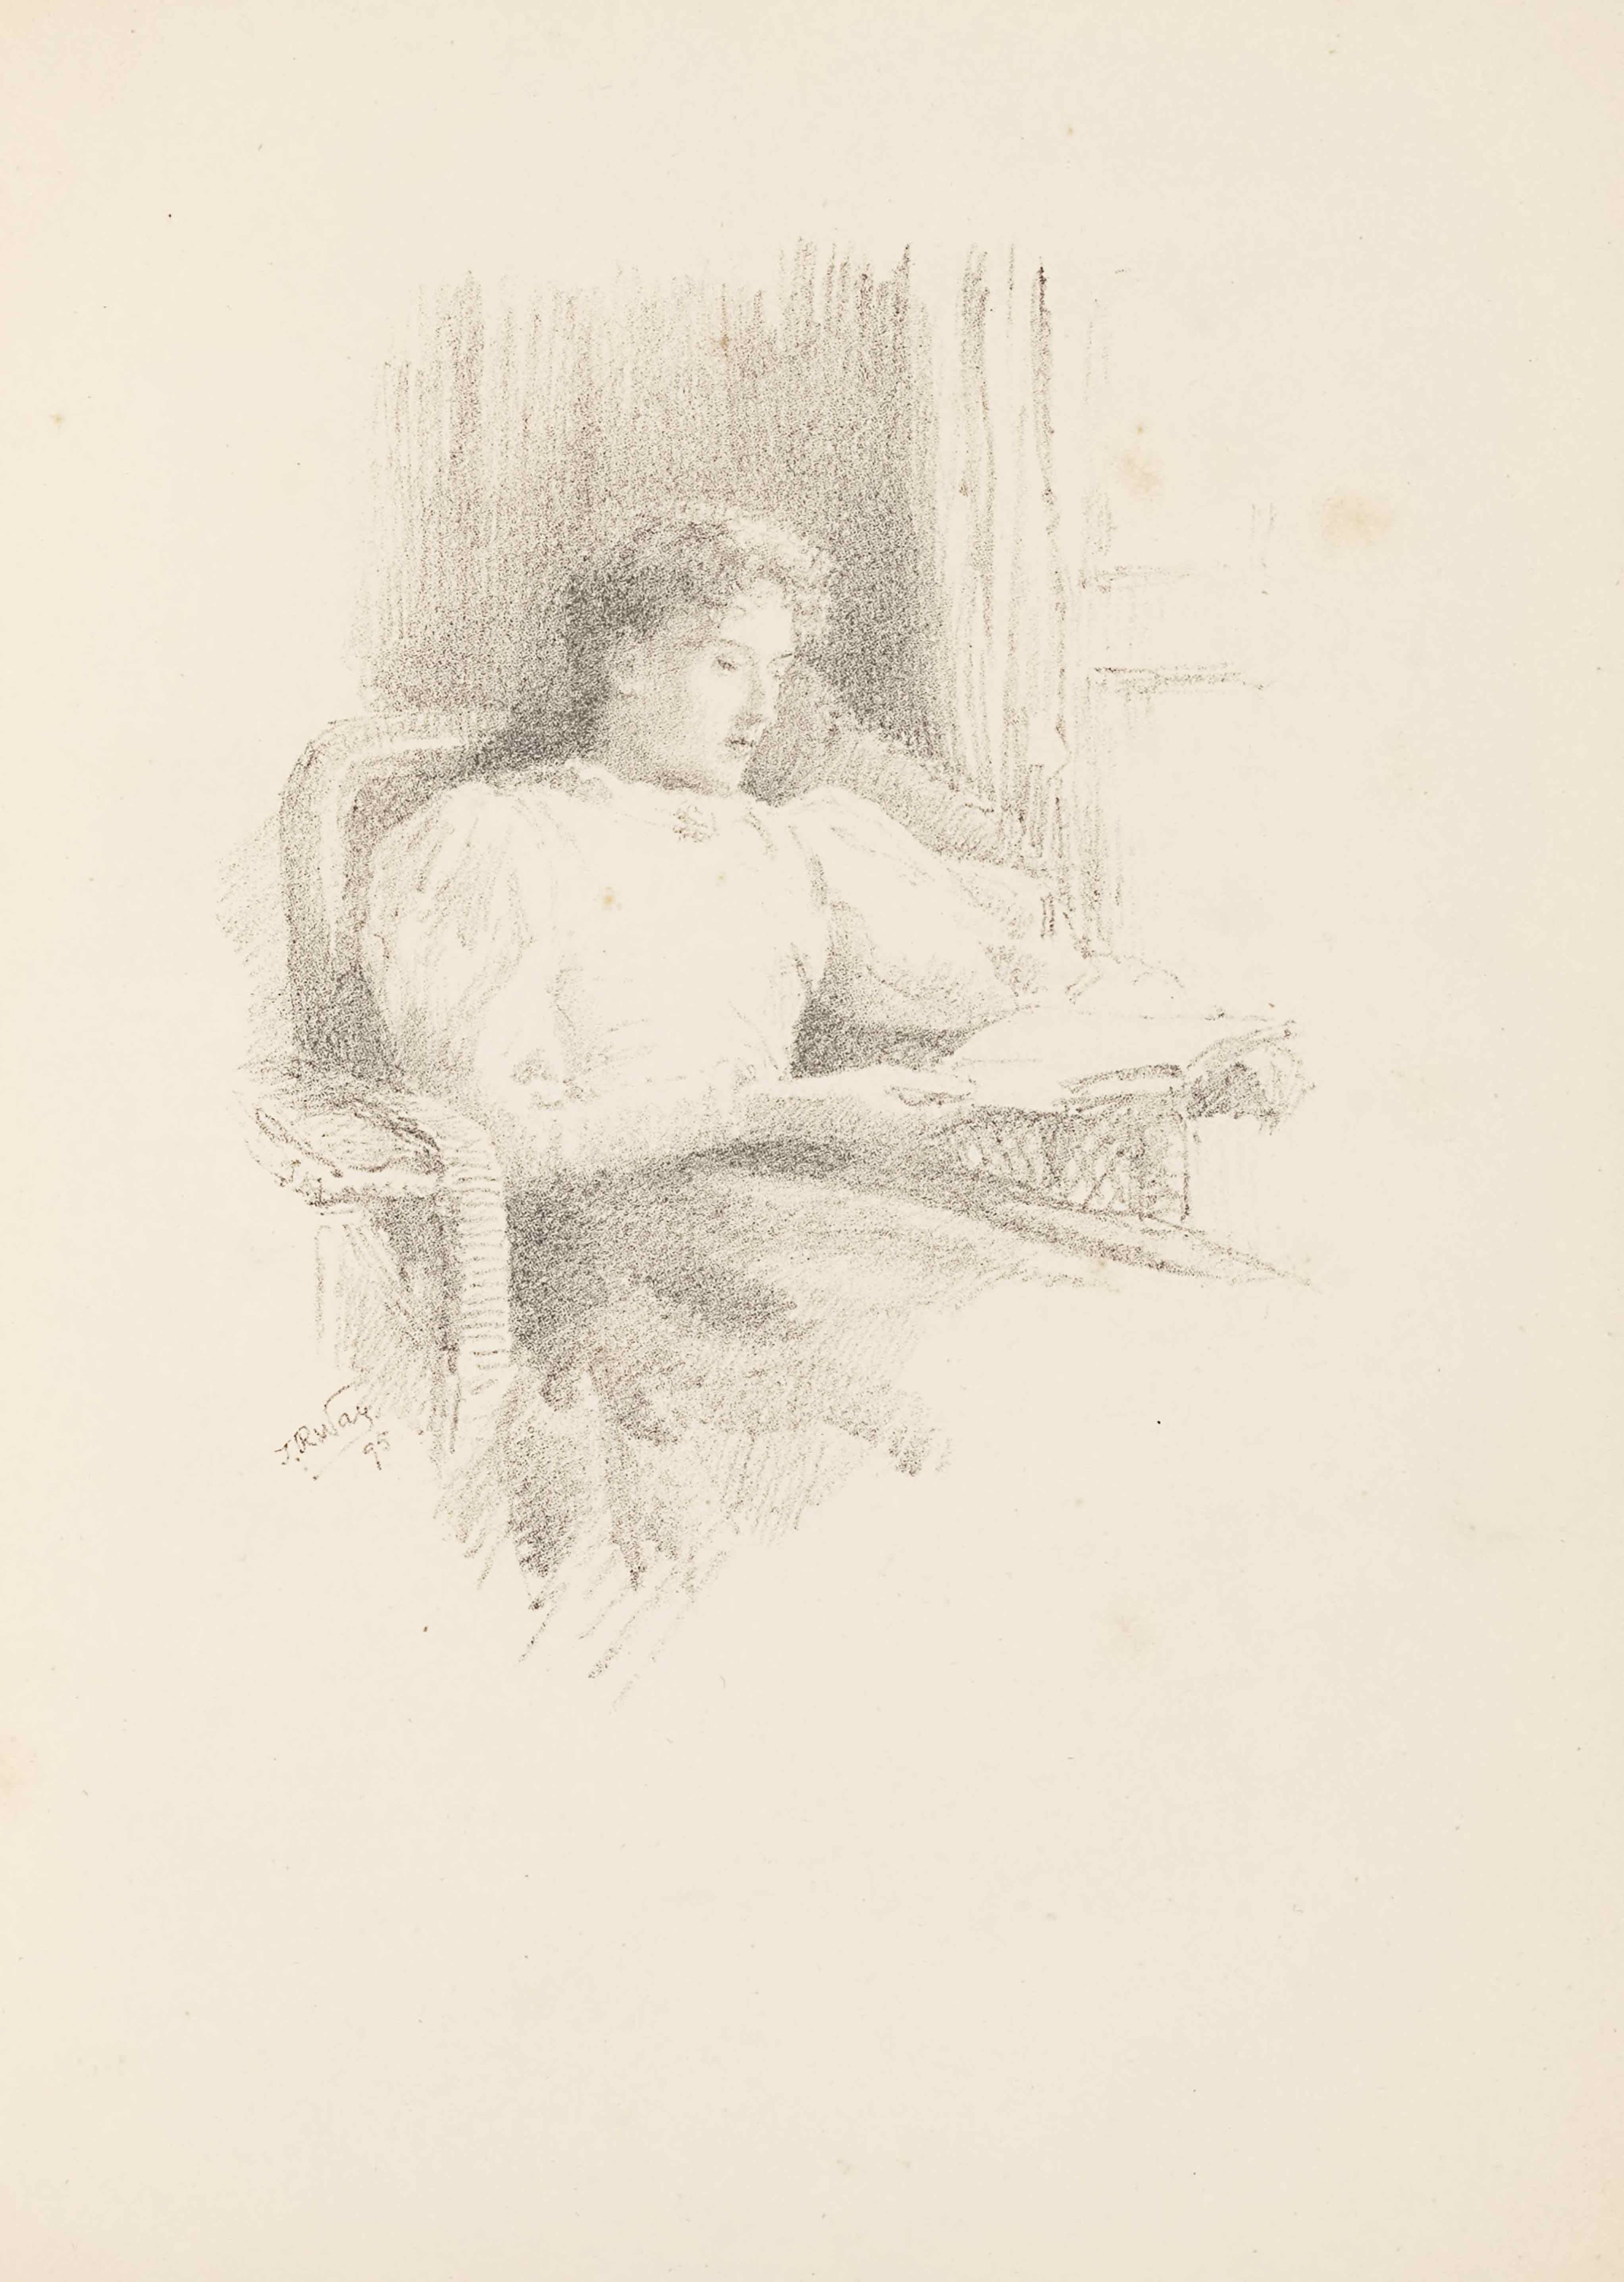 """The unbordered lithograph by T R Way is in portrait orientation. The image shows the torso of a woman sitting in a wicker chair reading a book. The image is sketched lightly and the woman's legs and surrounding area are not visible. The woman is turned to face slightly to the right, where there is the suggestion of a window. The woman's body is leaned back into the chair. She is wearing a dark skirt and a plain white shirt with long and puffy sleeves that tighten around the forearm. The shirt has a high neckline. Her face is tilted down to look at the book which rests upon the left chair arm. Her right arm reaches across her body to support the book and her left arm is extended out below the book holding that side of it up. Her hair is wavy and tied back at the nape of her neck. Her eyes are hardly visible because her eyelids are mostly closed. Behind where she sits in the chair is a section of black shading to indicate a wall in the room. There are light outlines of a paned window in the background and top right of the page. The artist's signature appears just to the left of the chair seat: """"T. R. Way."""" and in the below is the date: """"95."""""""